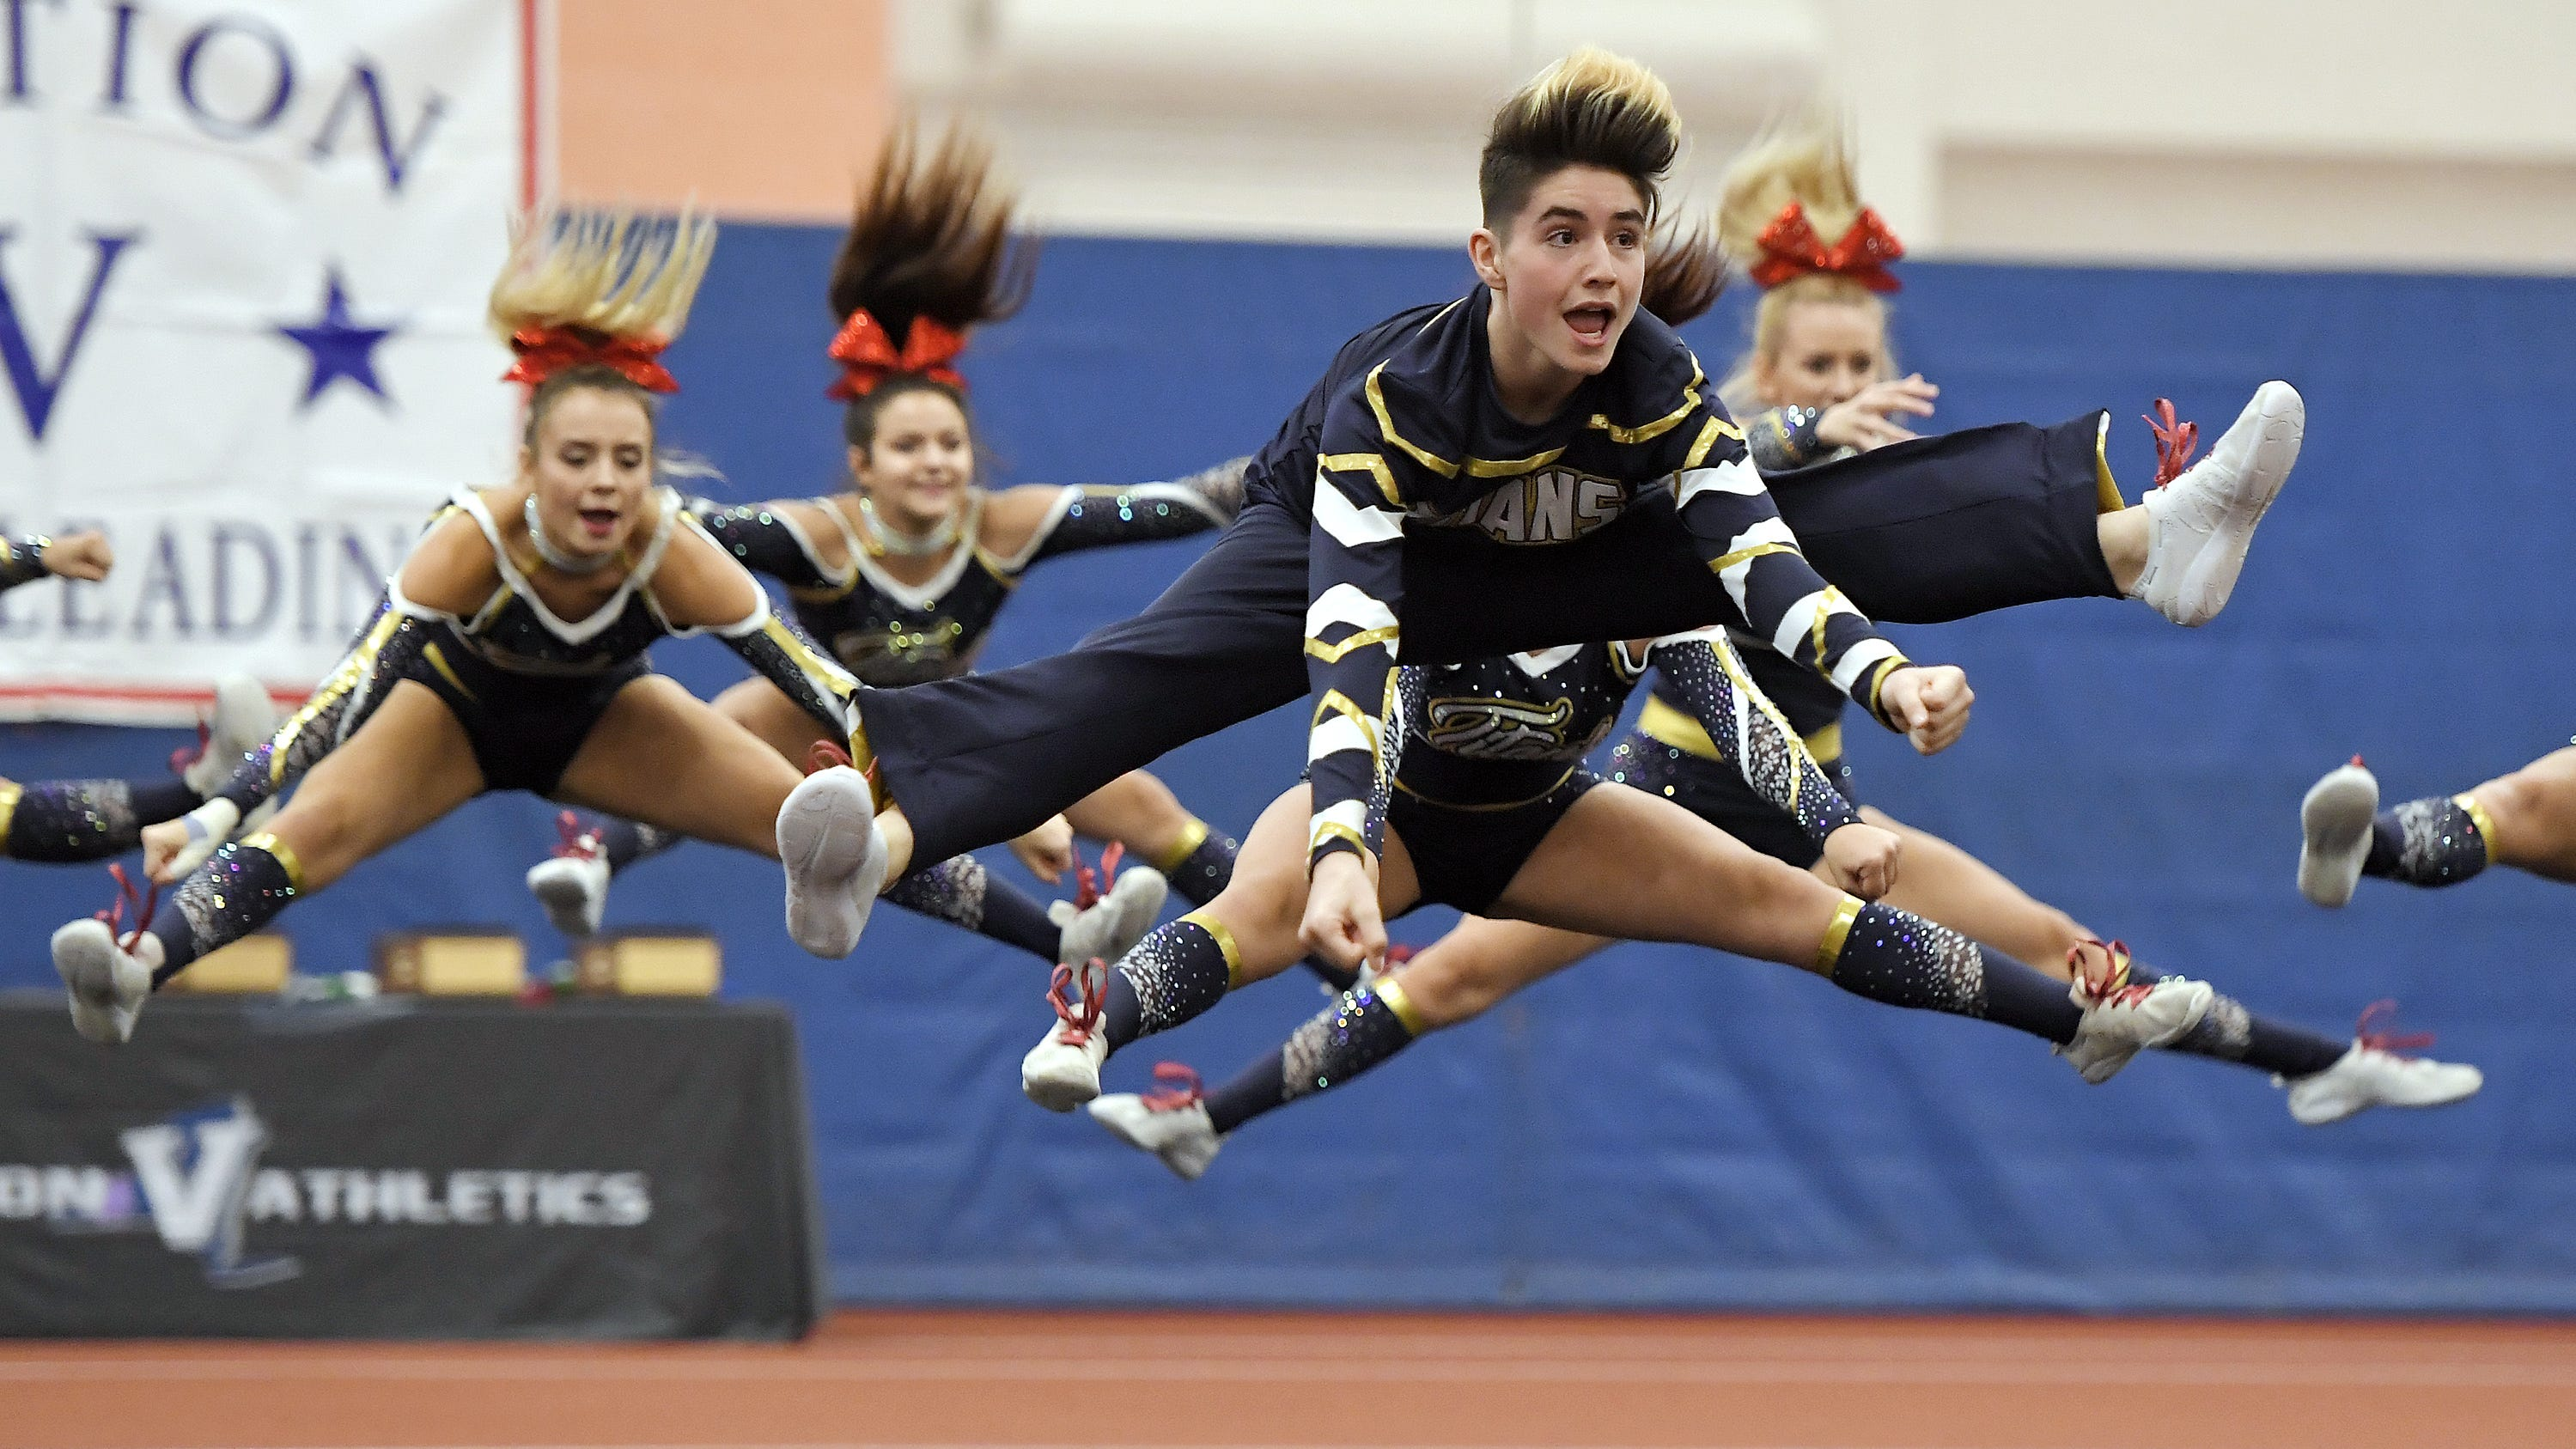 Webster Thomas, Fairport, Spencerport among Section V Fall Cheerleading champs